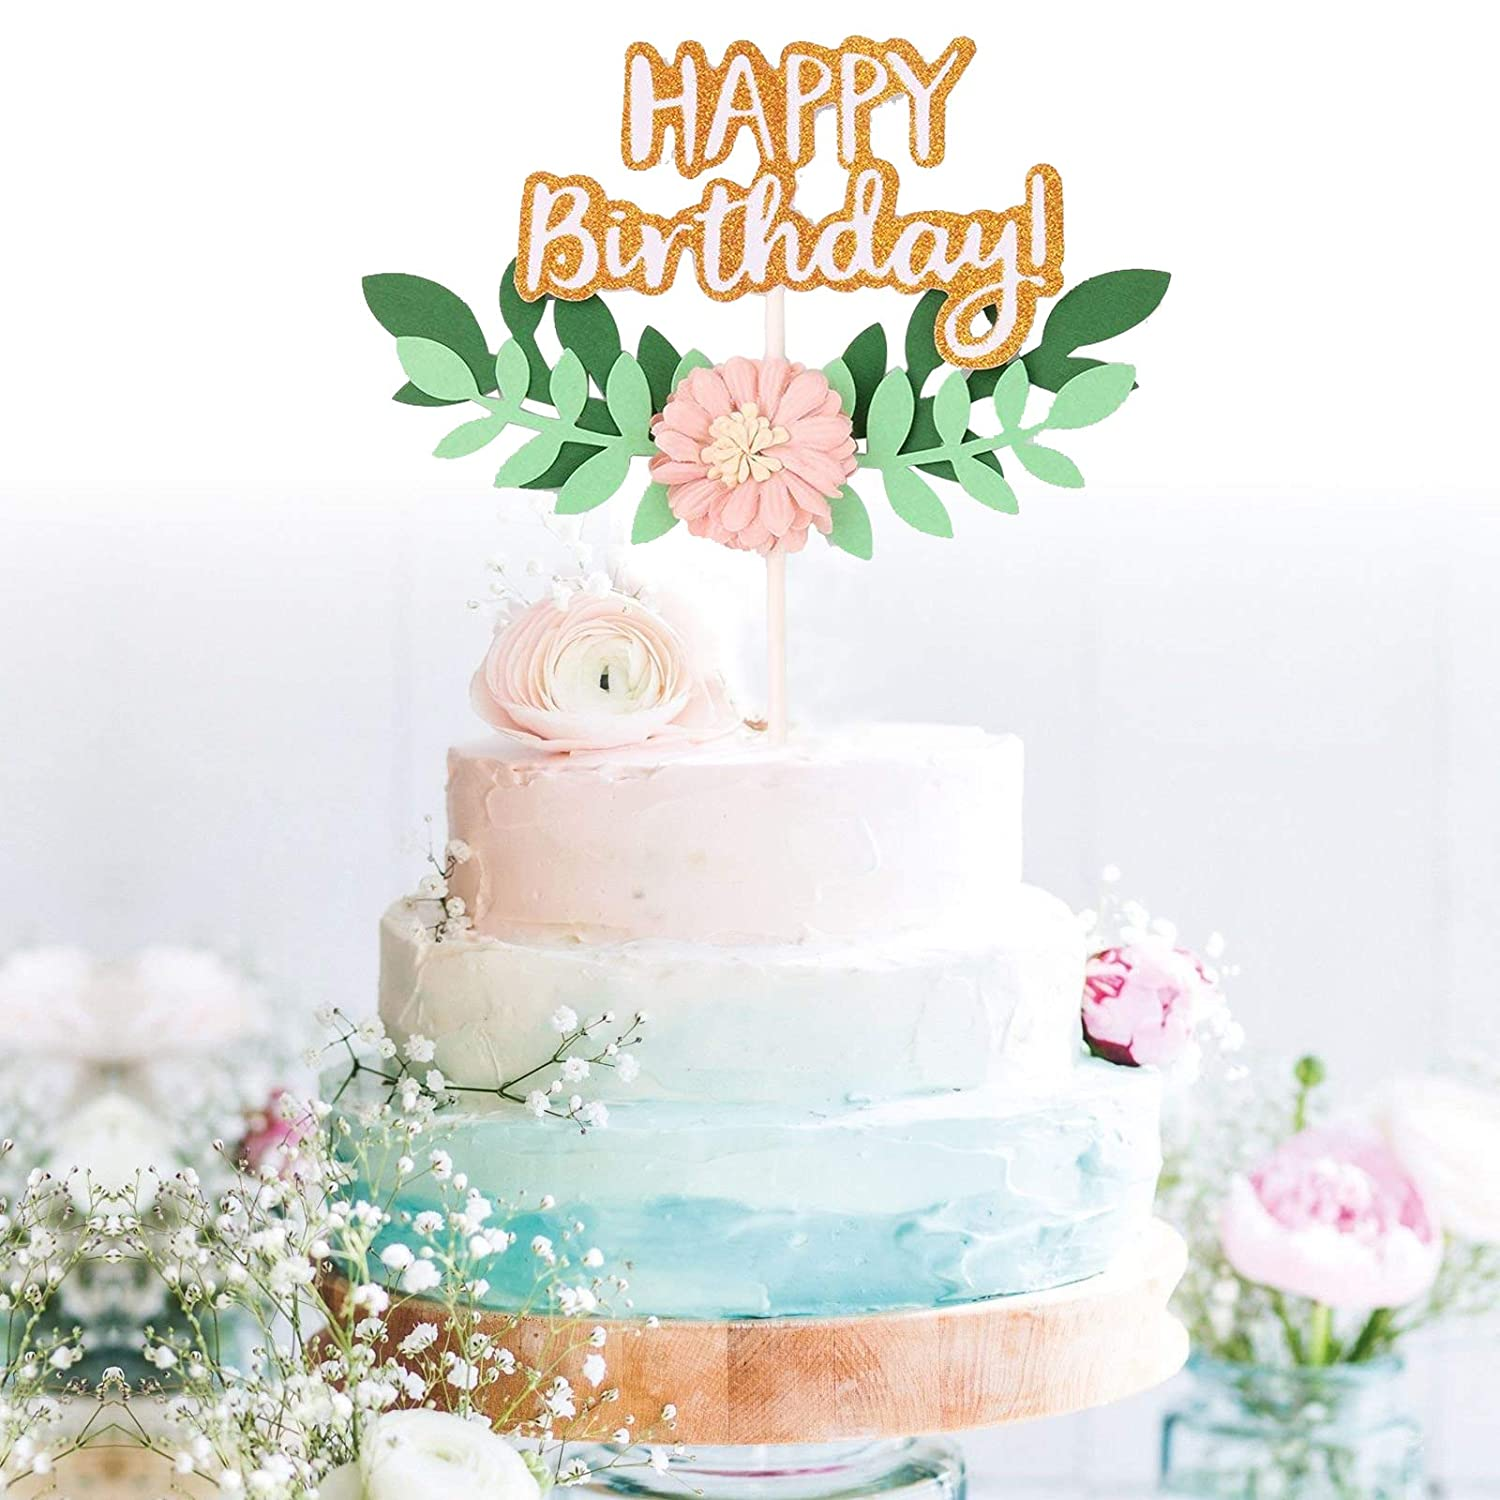 GrantParty Gold Happy Birthday Cake Topper Pink Flower And Leaves